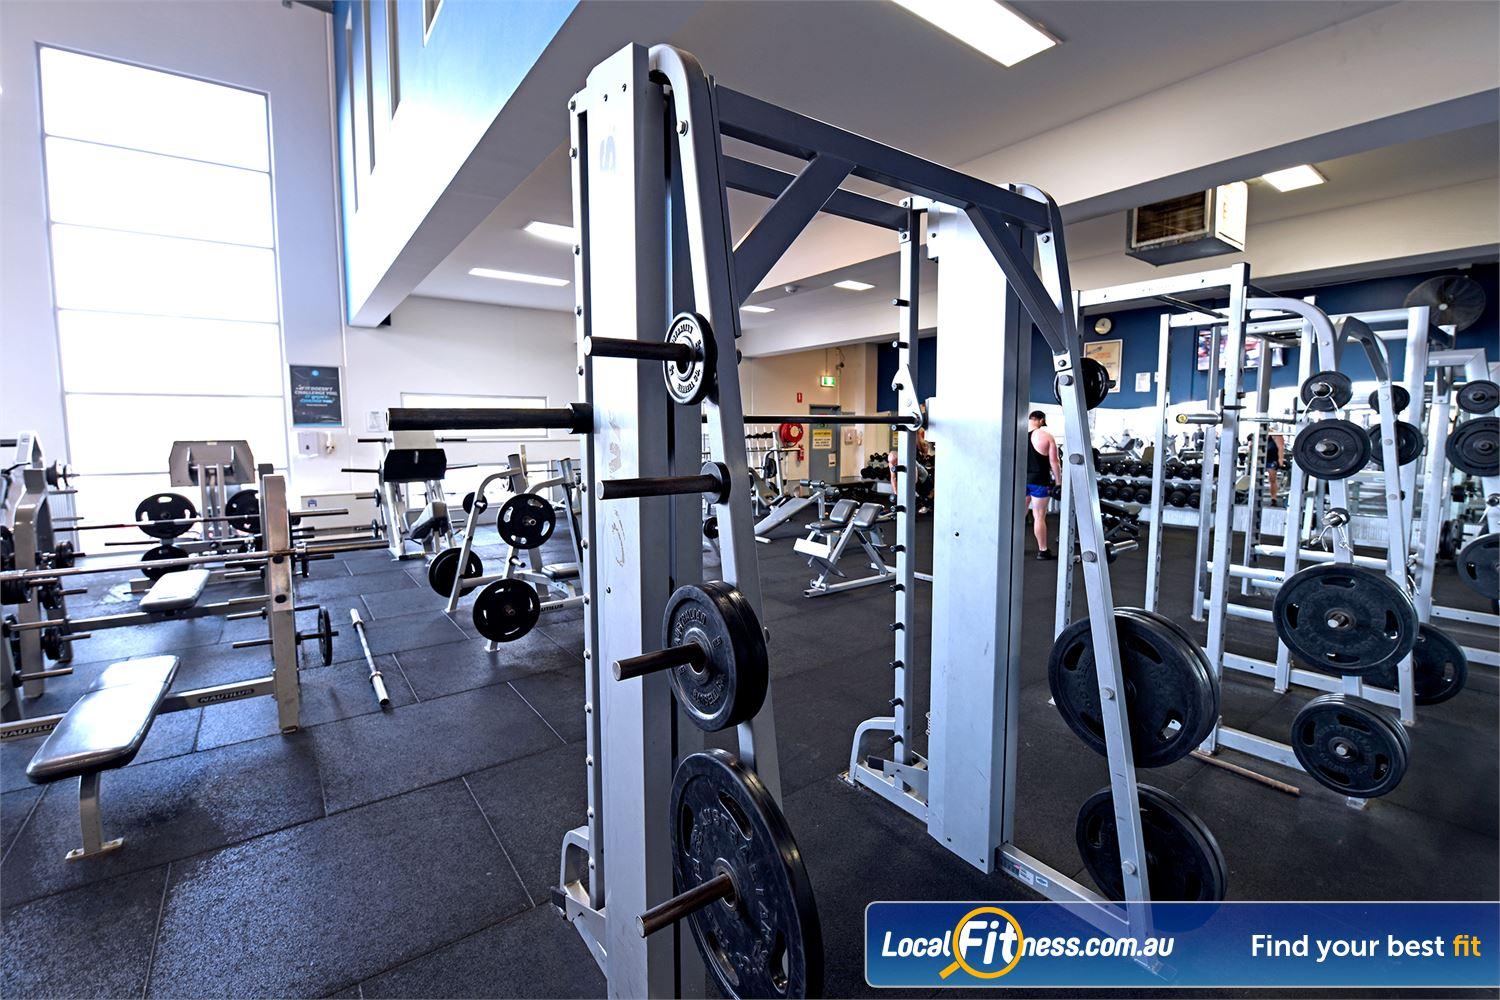 Goodlife Health Clubs Near South Geelong Our free-weights area includes a smith machine.